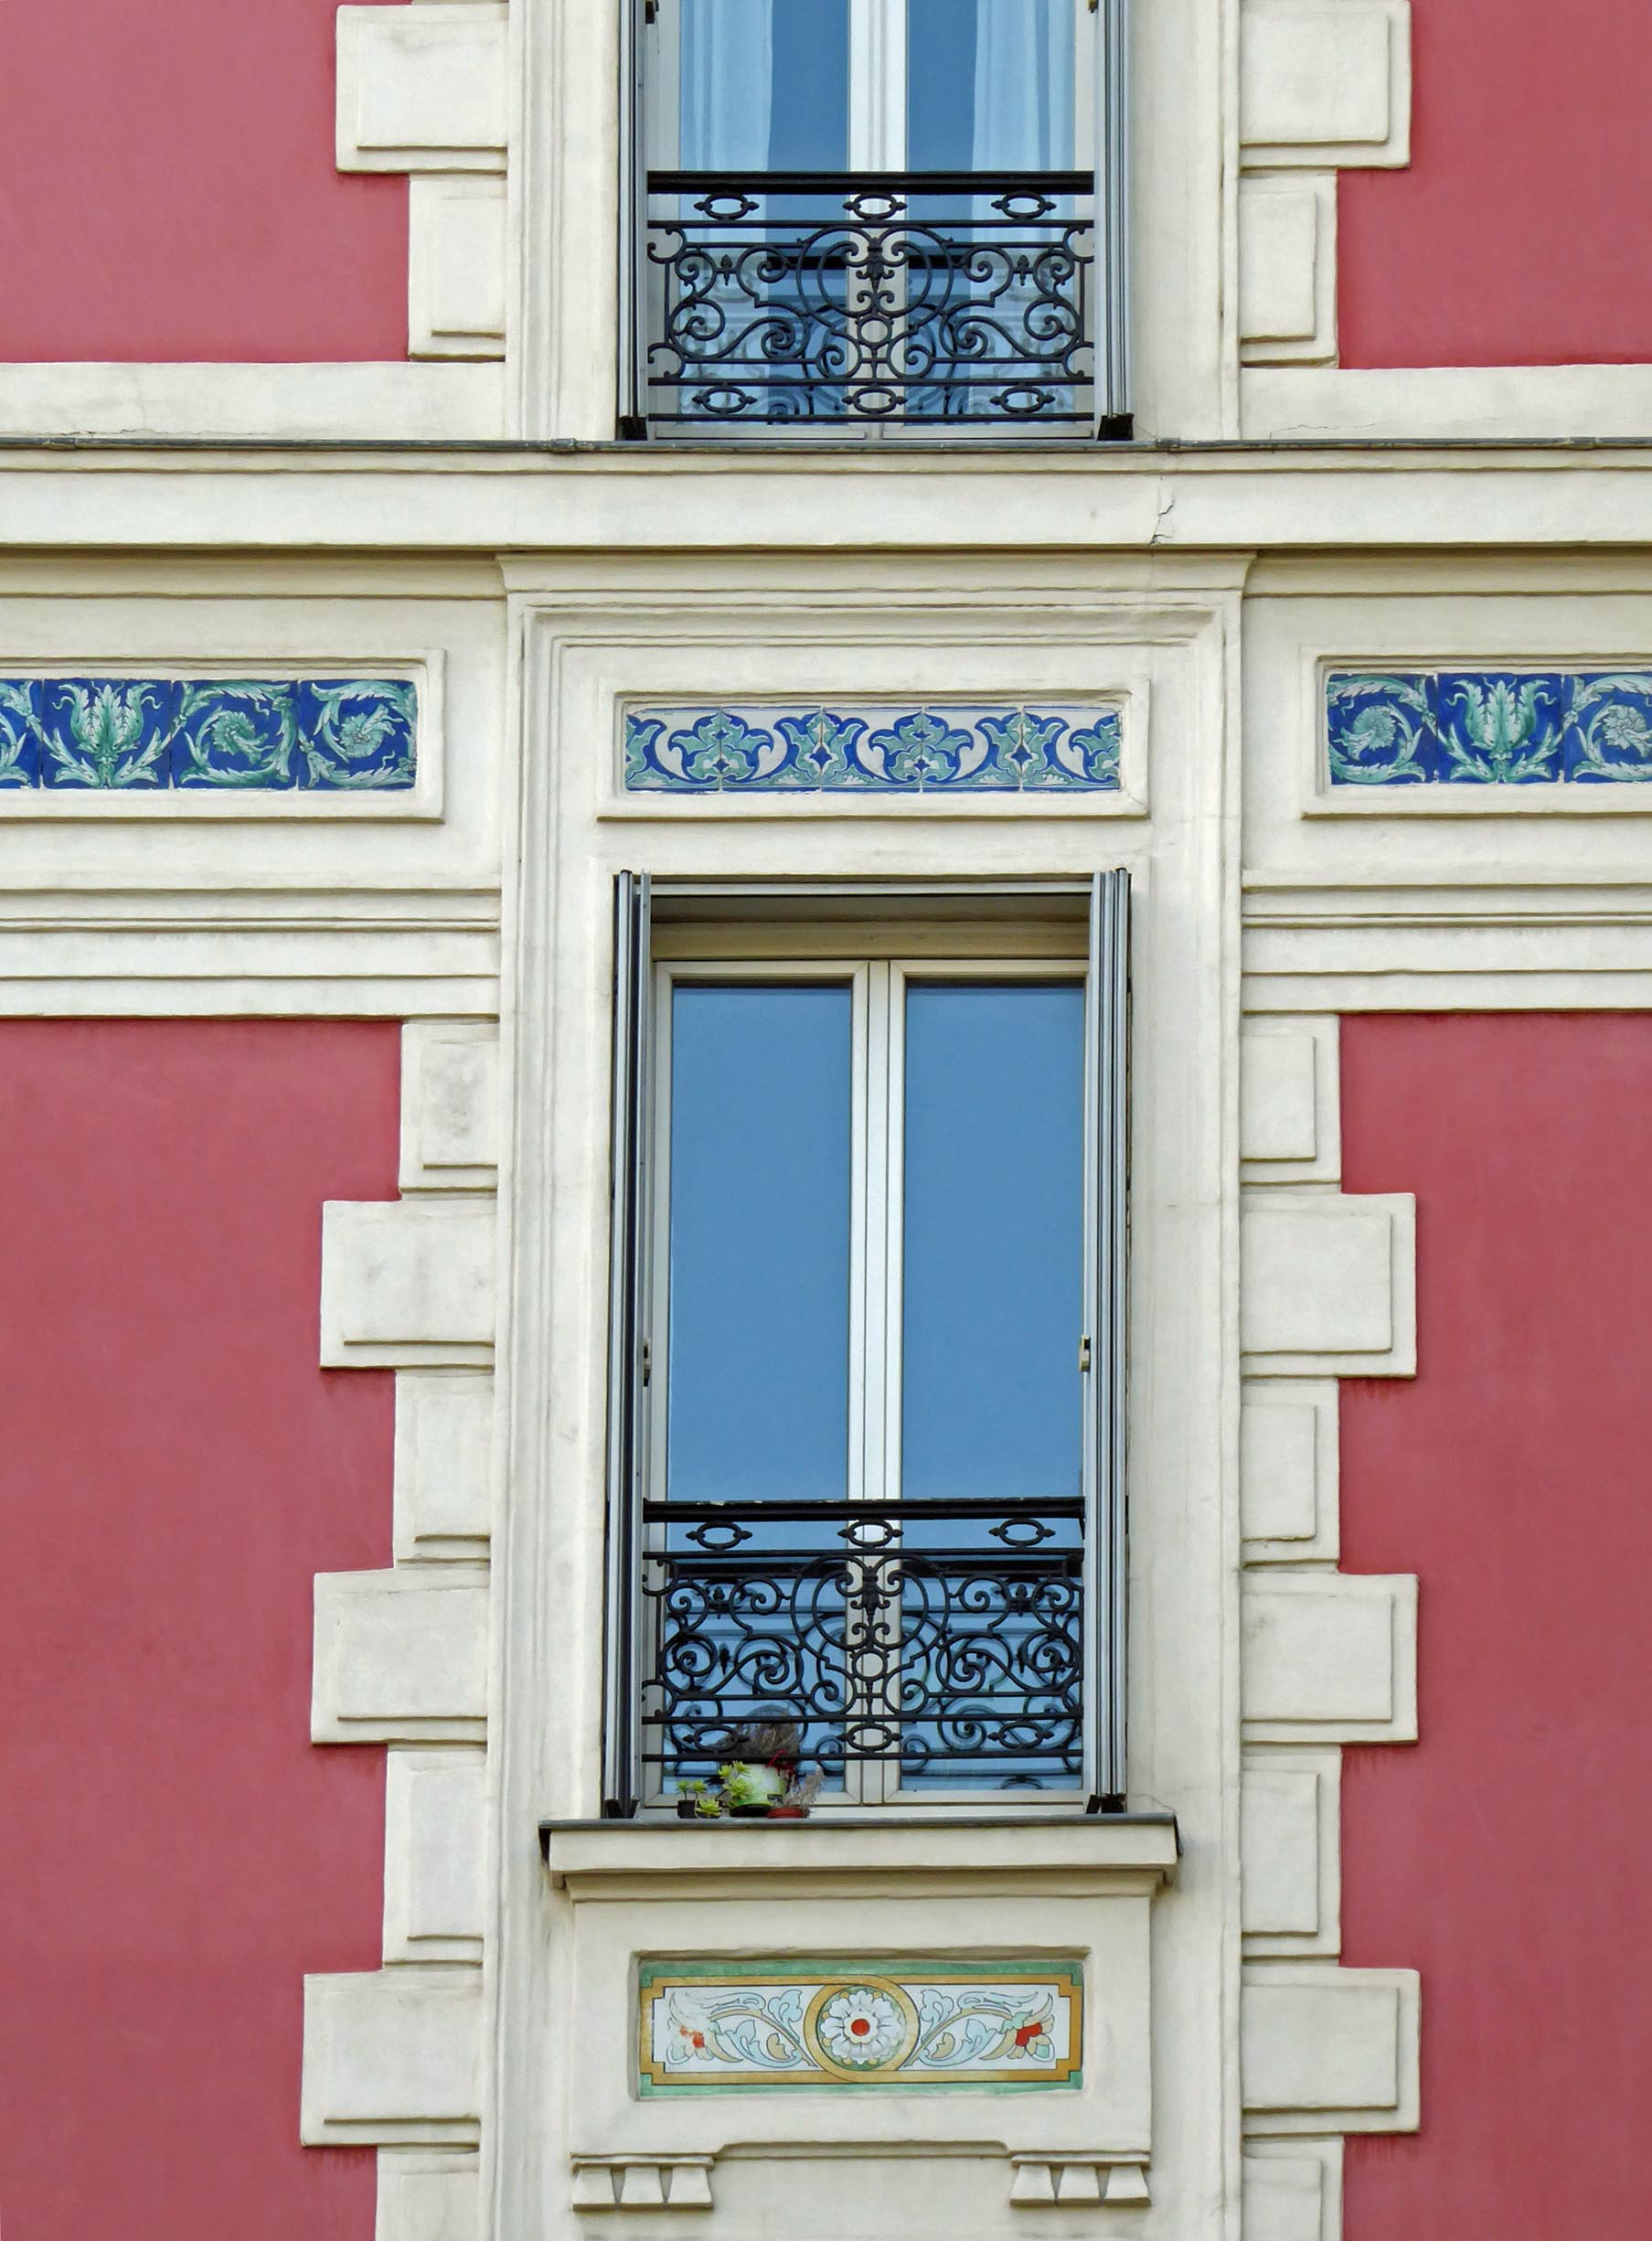 Window with railing and decorative frieze